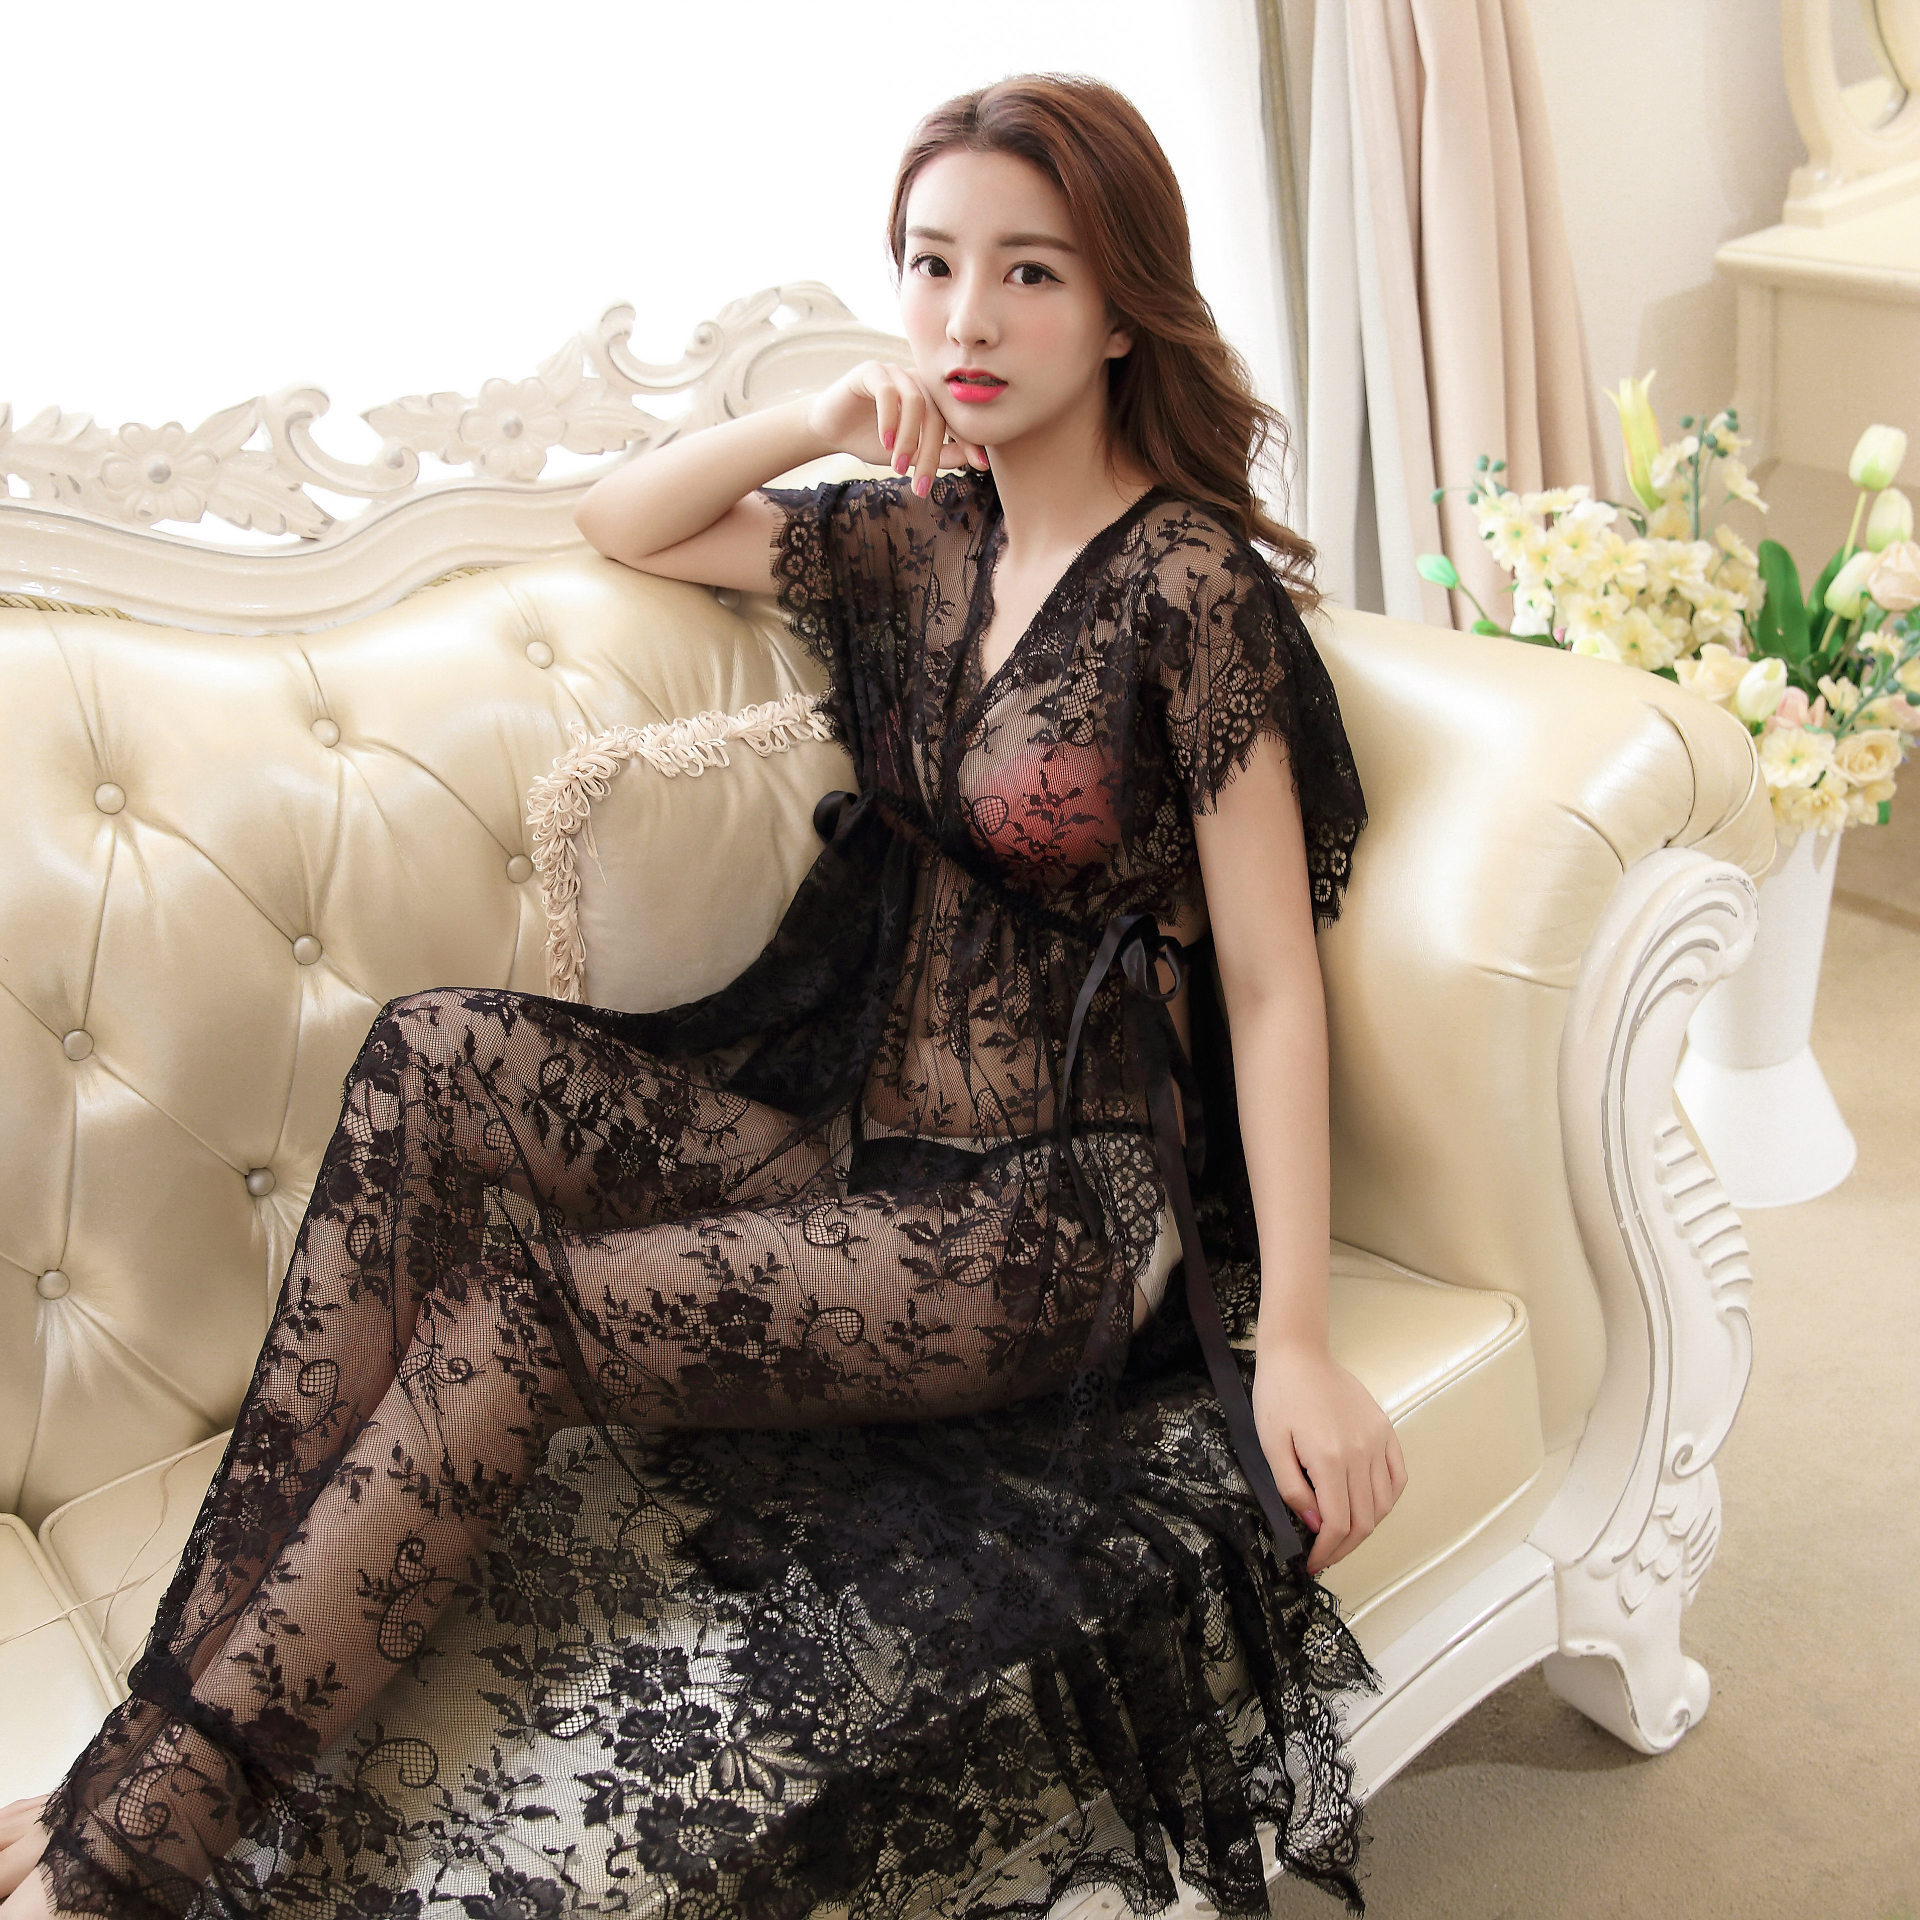 Special Offers Sexy Pyjamas Dress Women Brands And Get Free Shipping